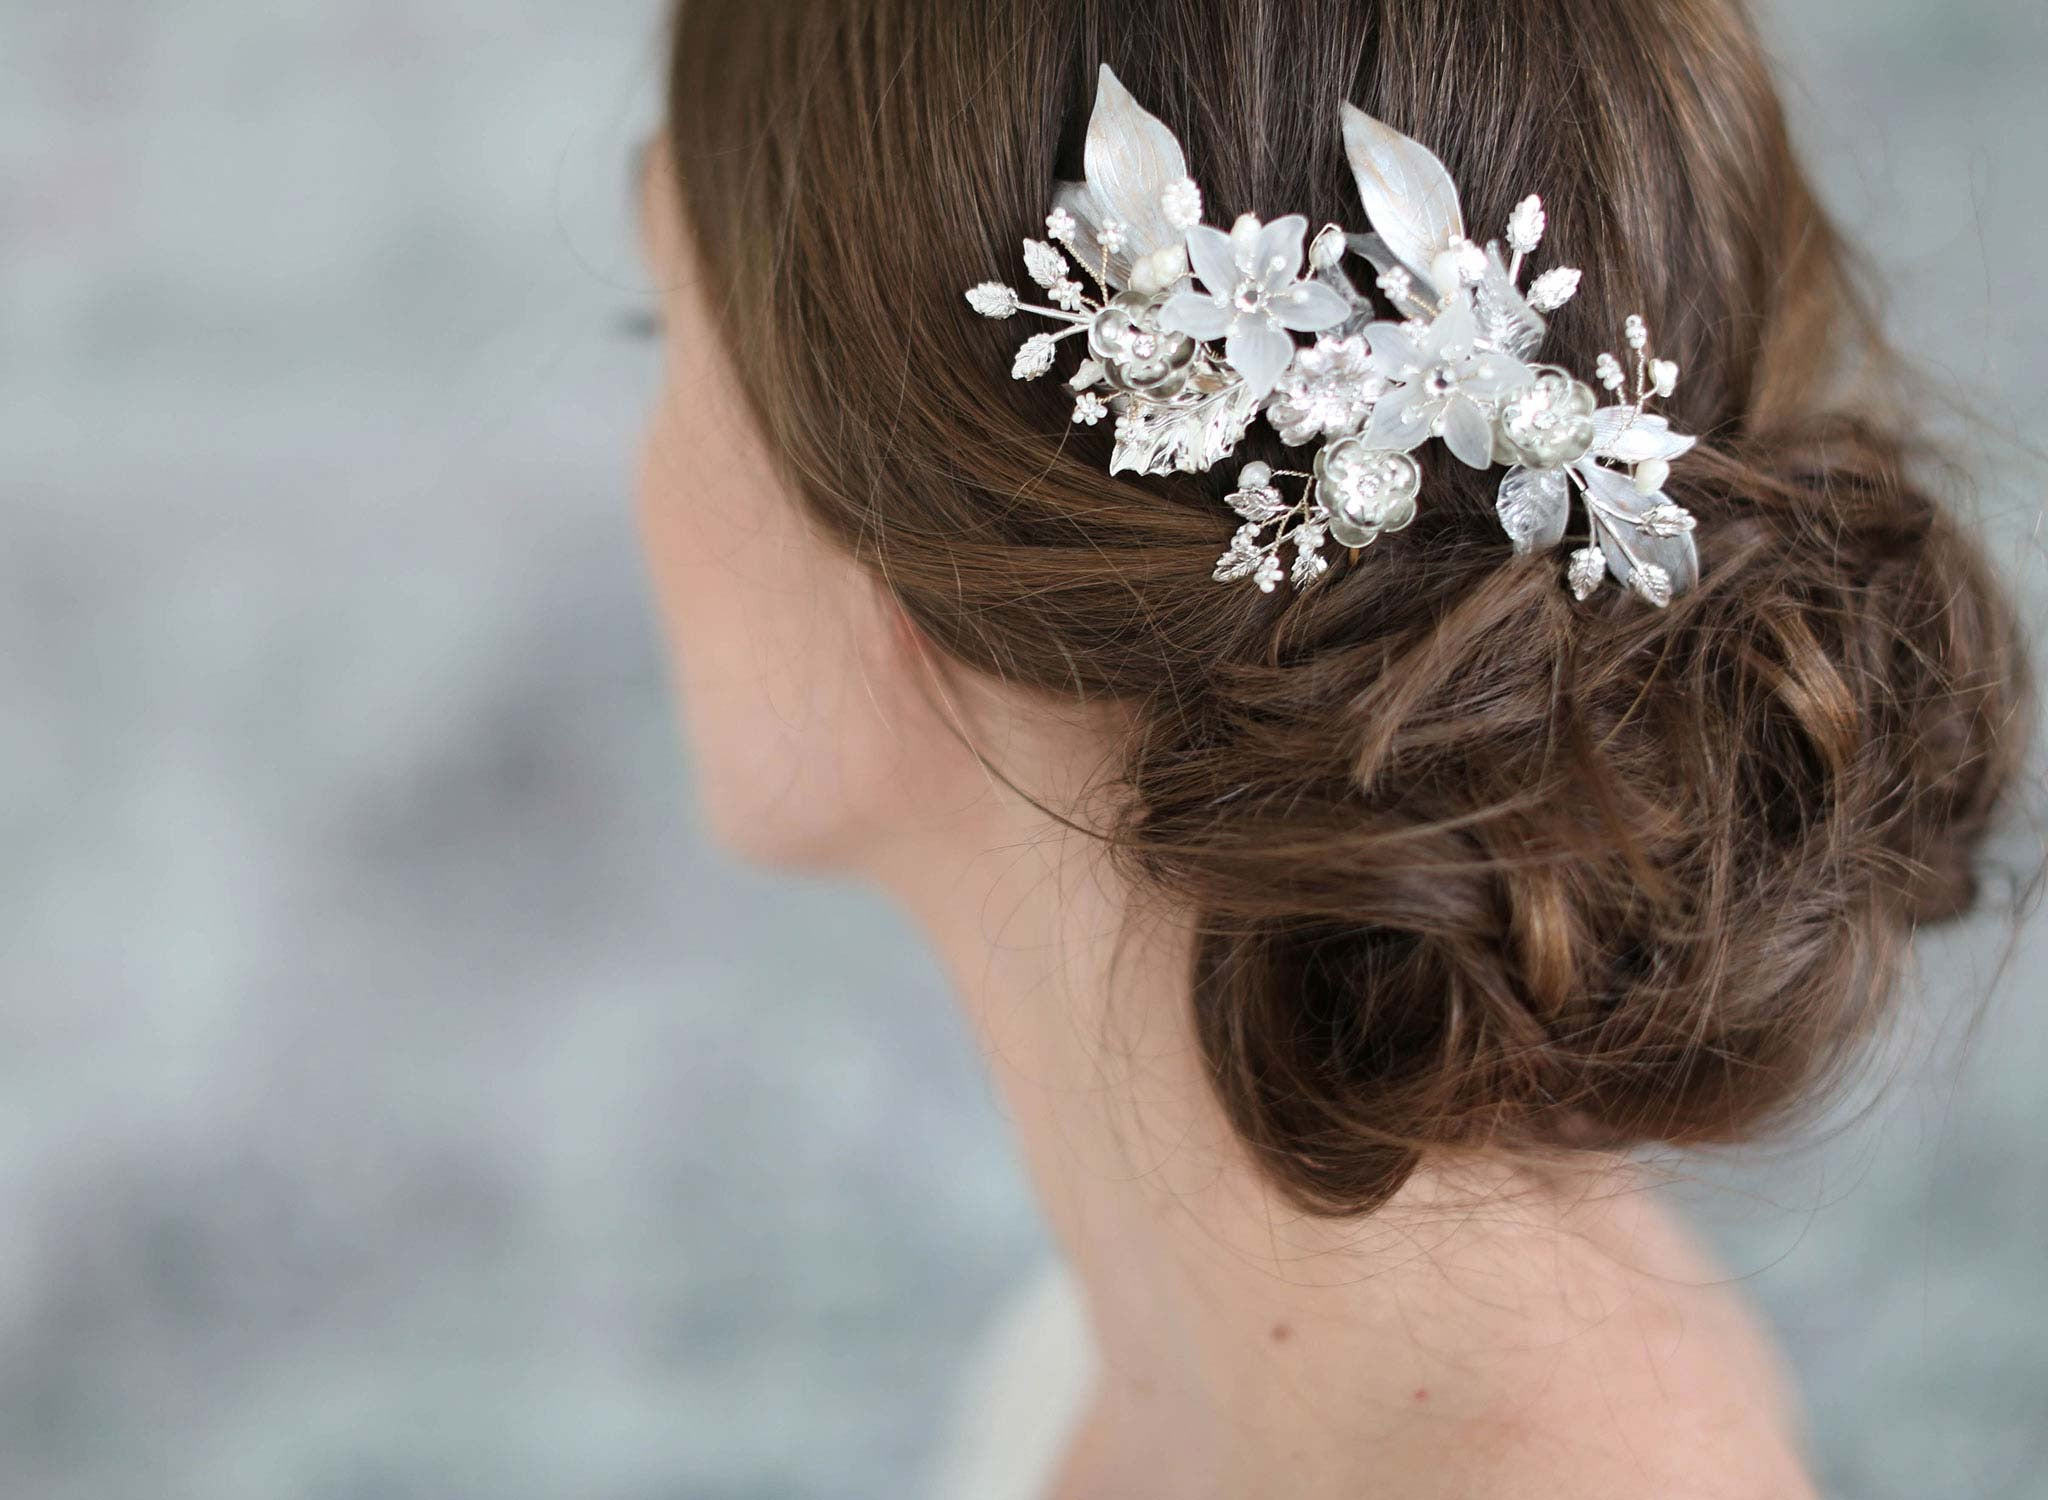 Frosted floral jewels comb - Style #724